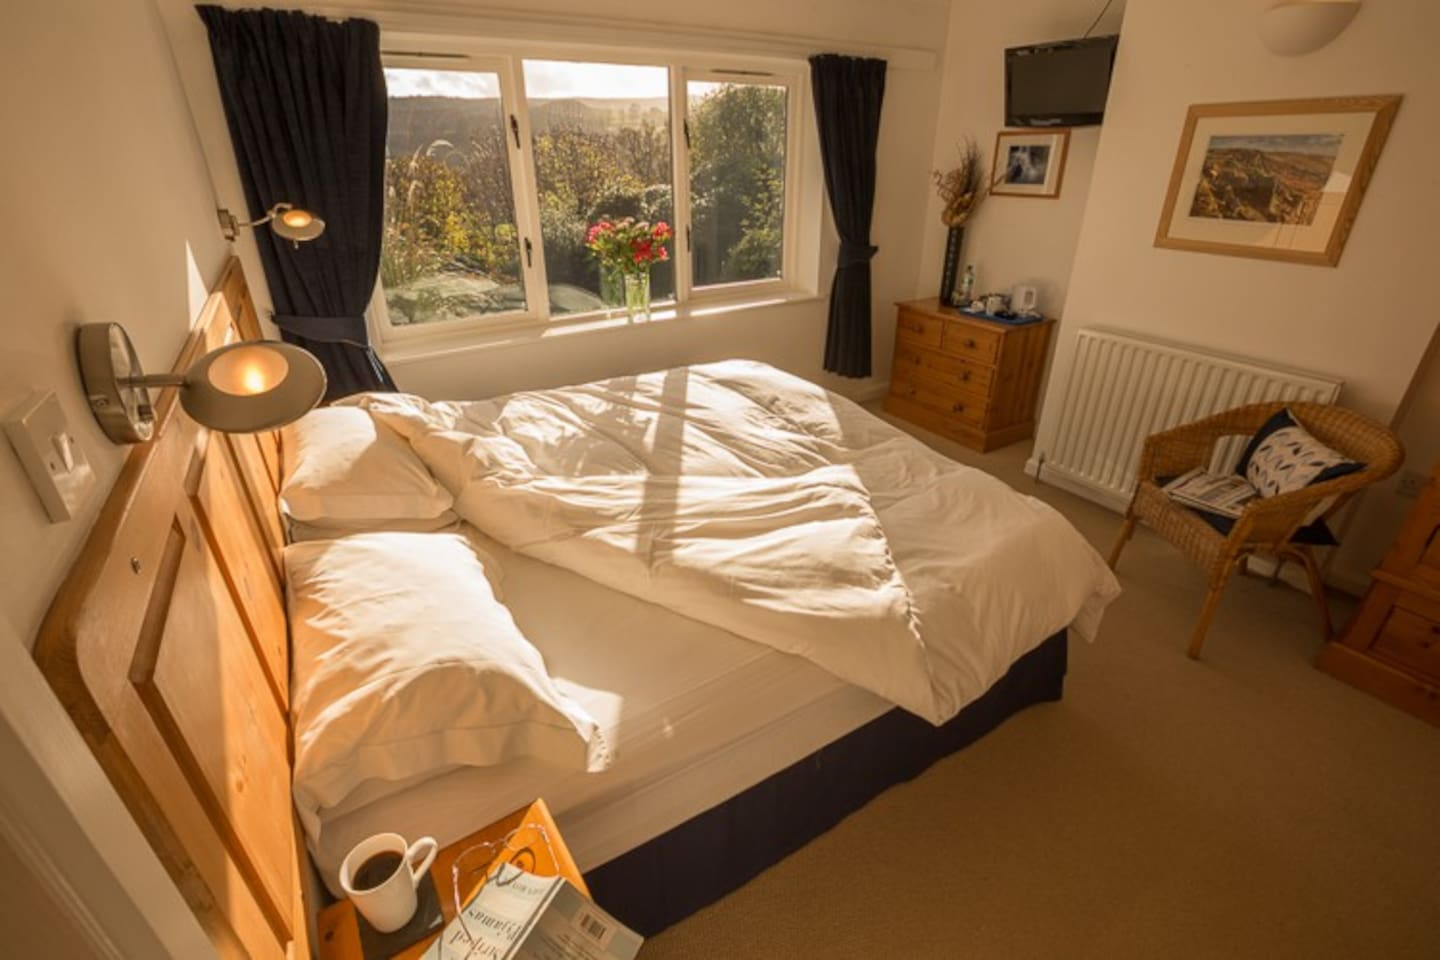 Fabulous views from some bedrooms